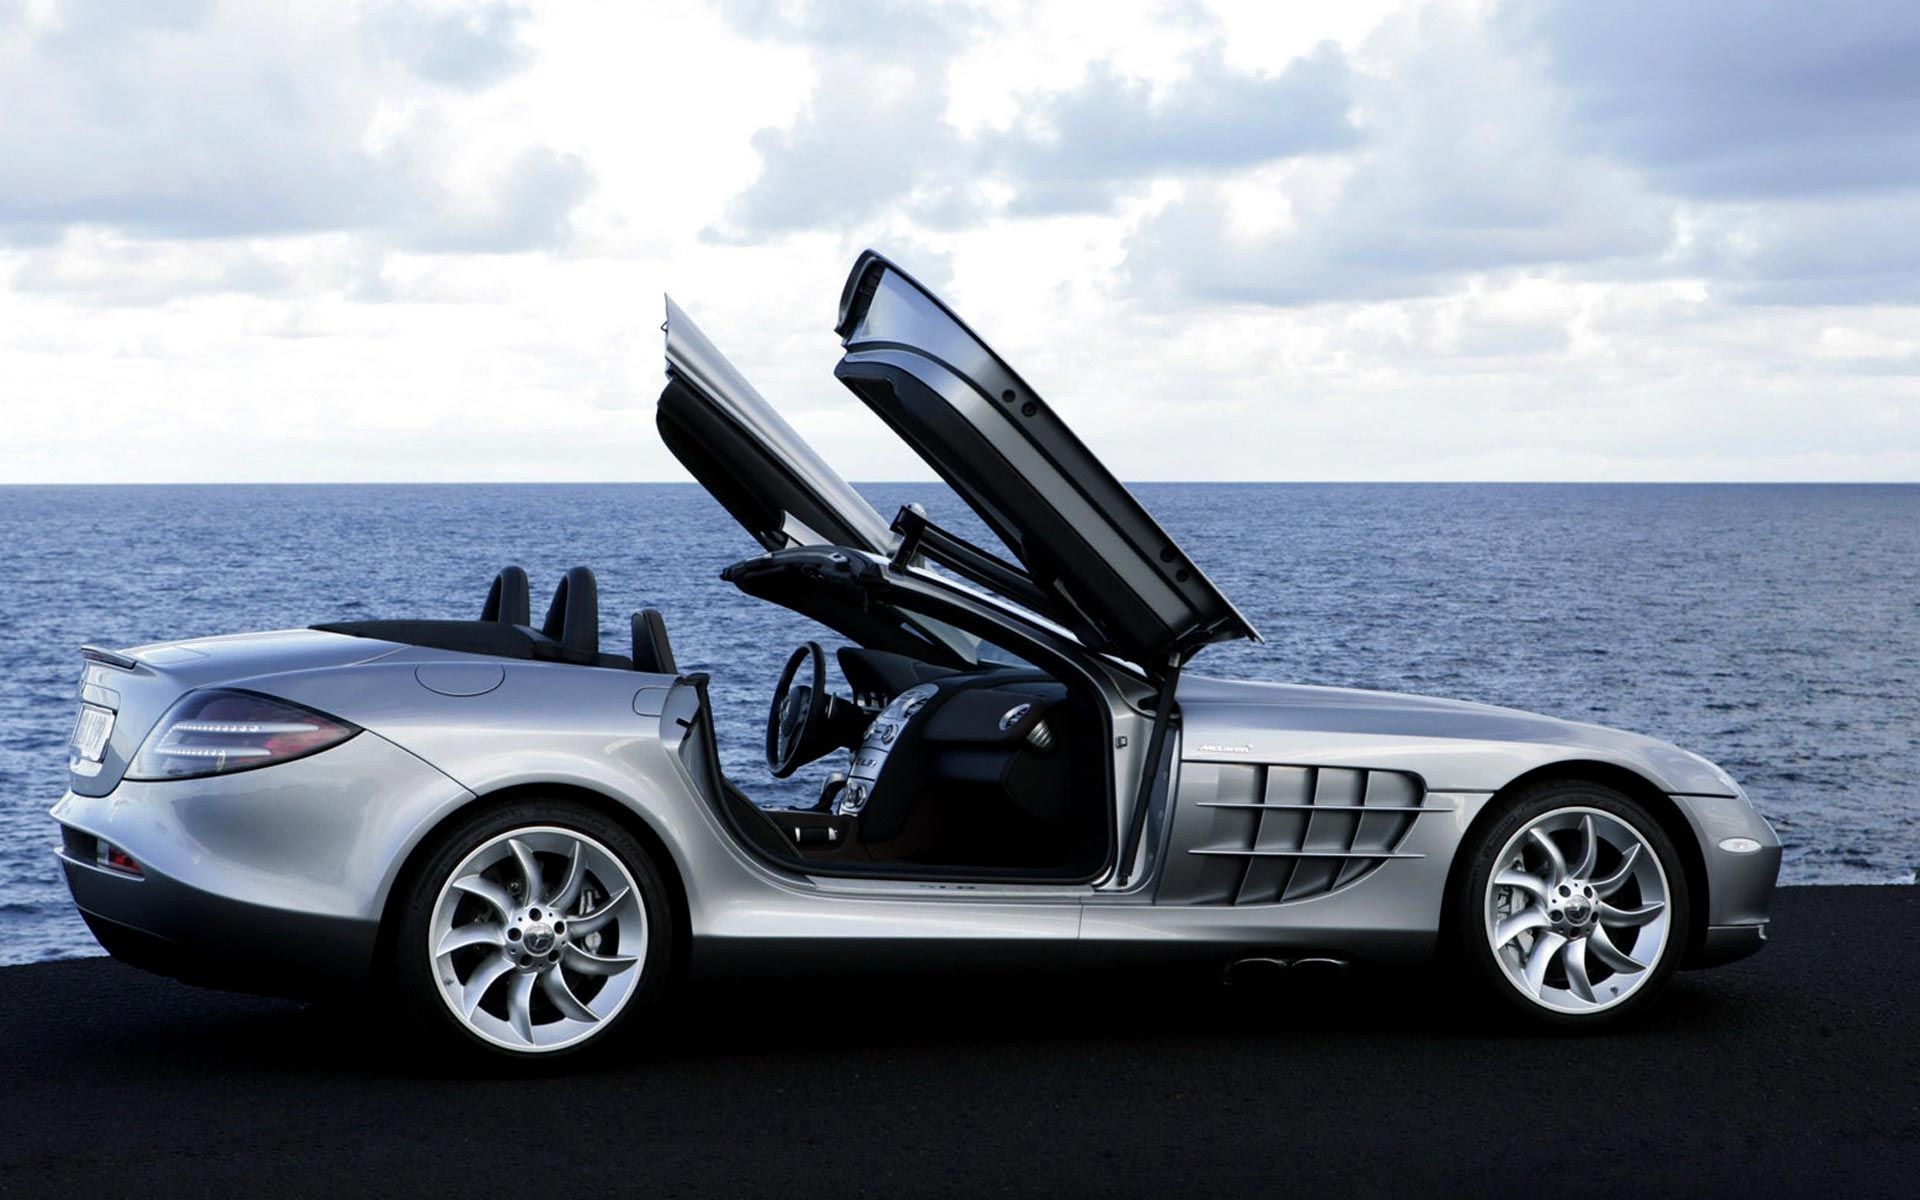 Awesome sport car mercedes benz wallpaper hd for desktop for Mercedes benz sport car